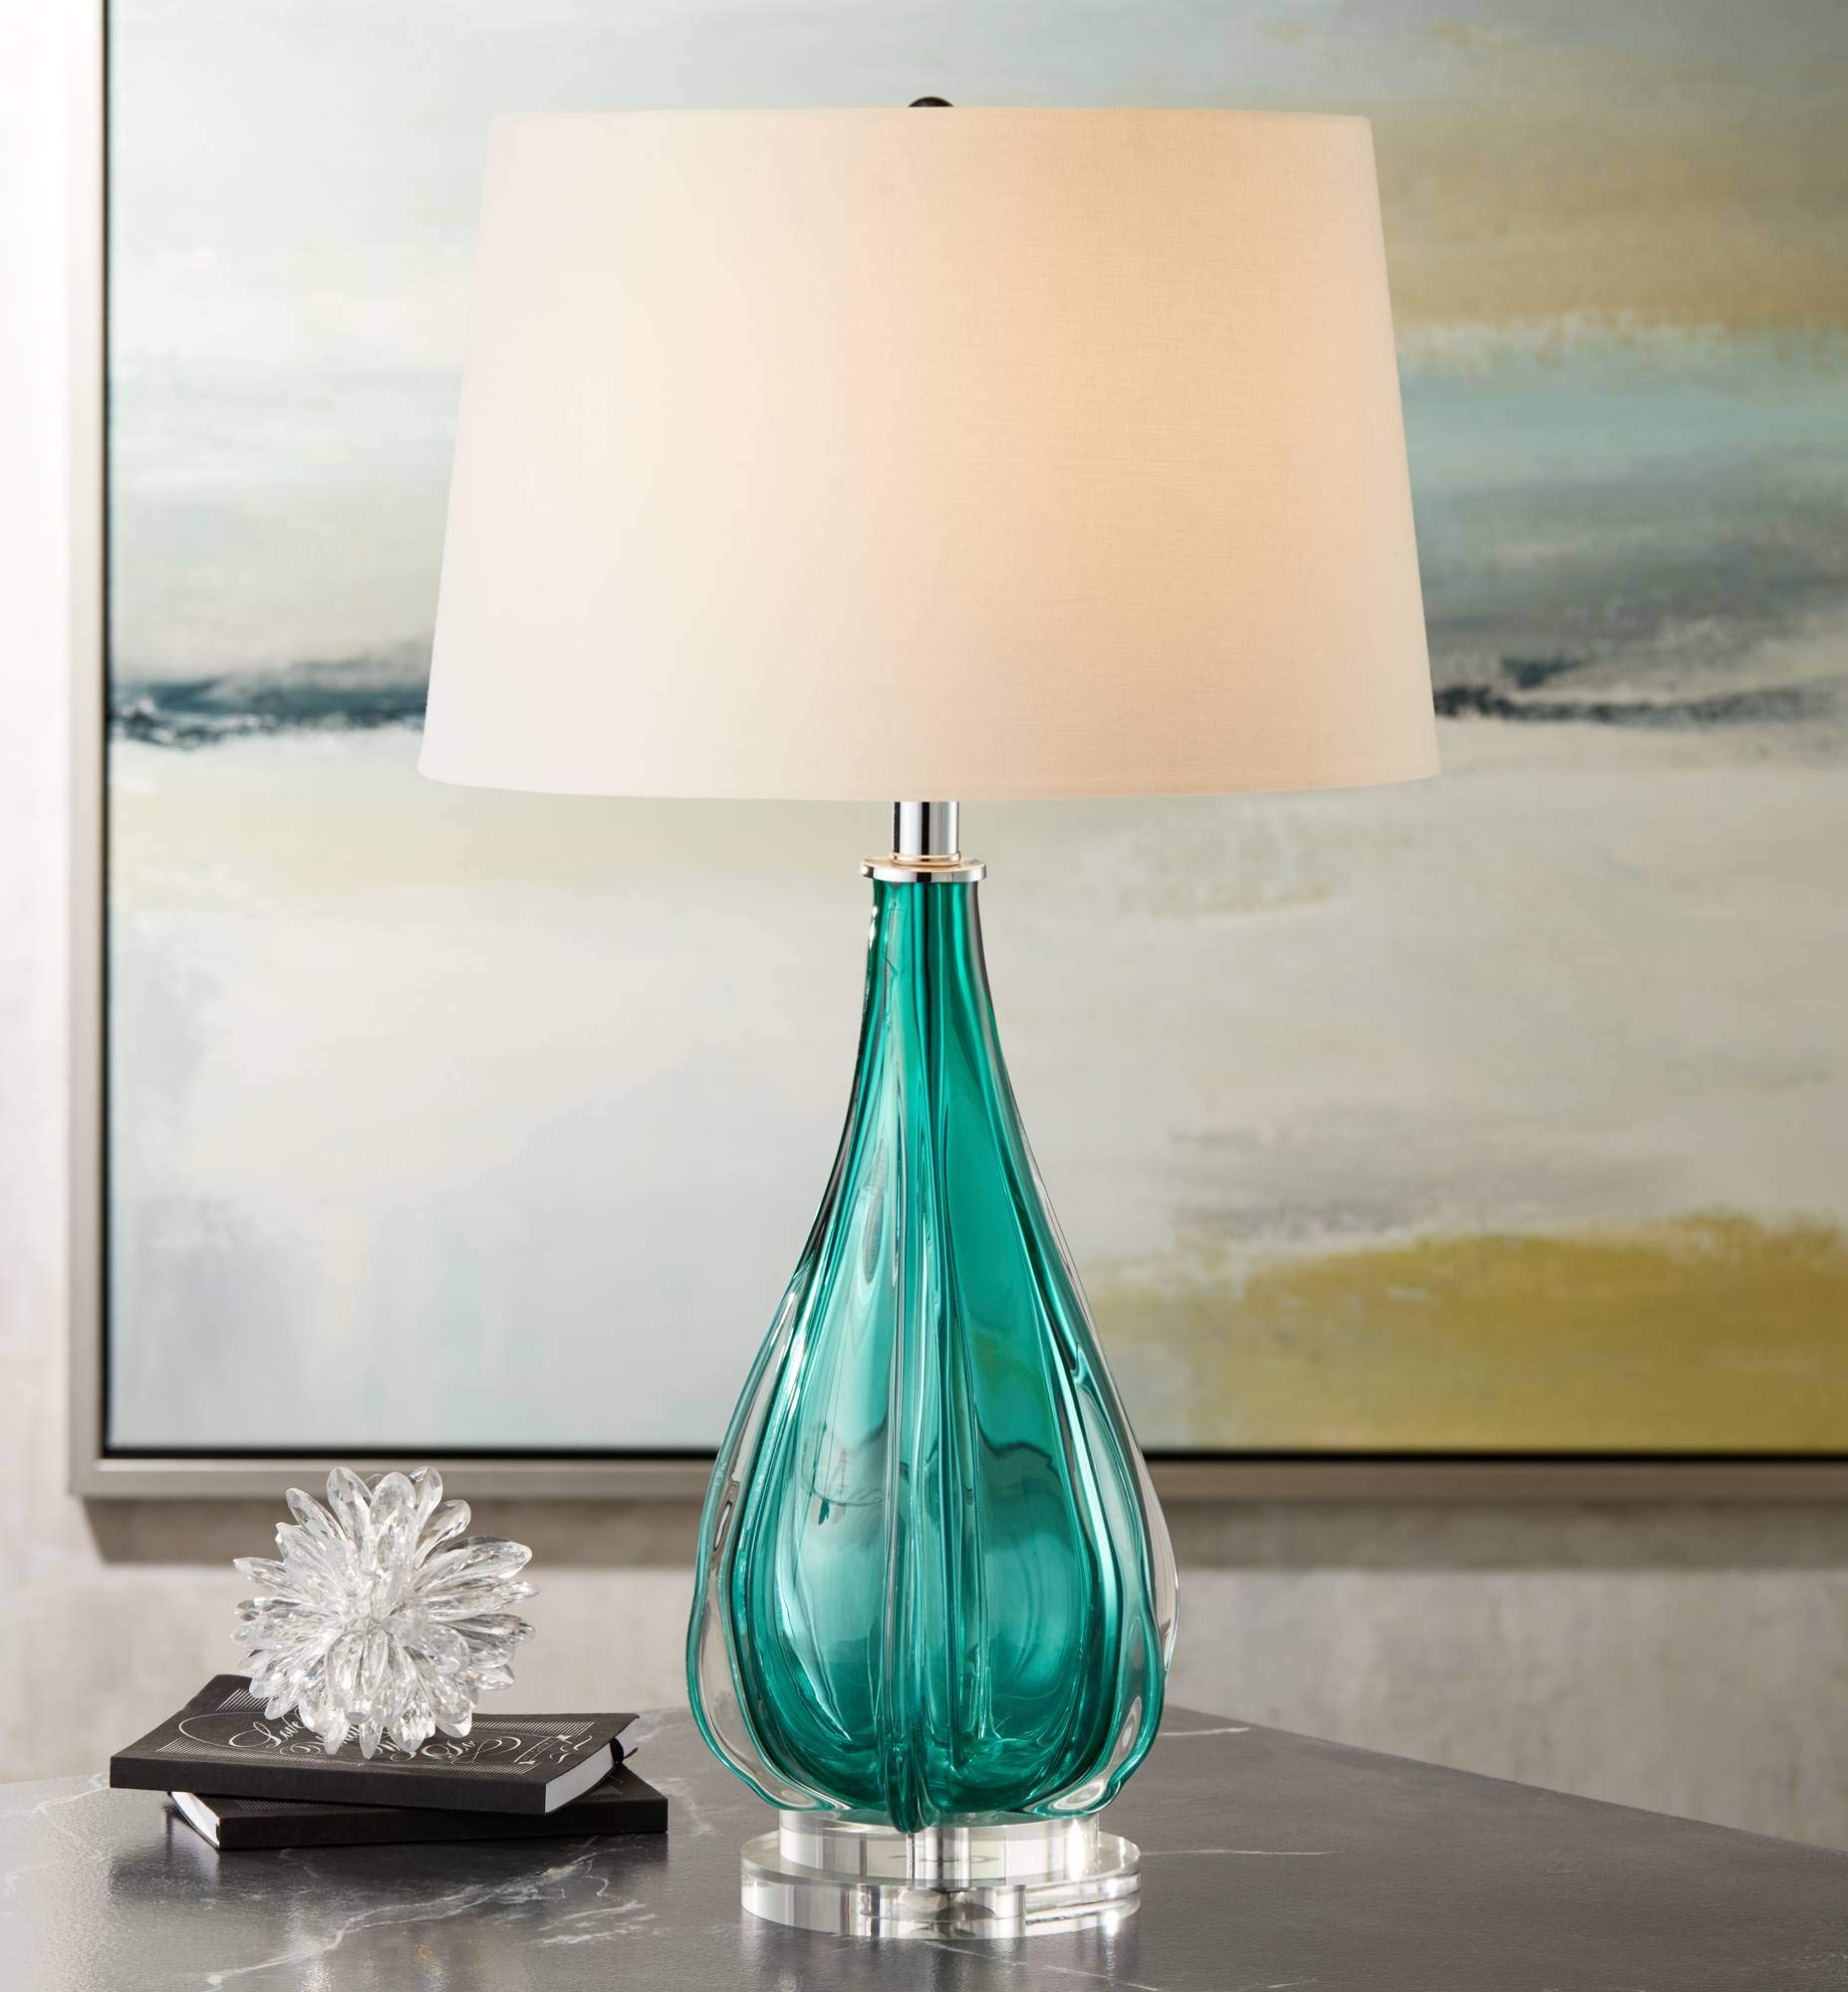 Claudette Modern Table Lamp Turquoise Glass Wave Pattern Tapered White Drum Shade for Living Room Family Bedroom Bedside - Possini Euro Design